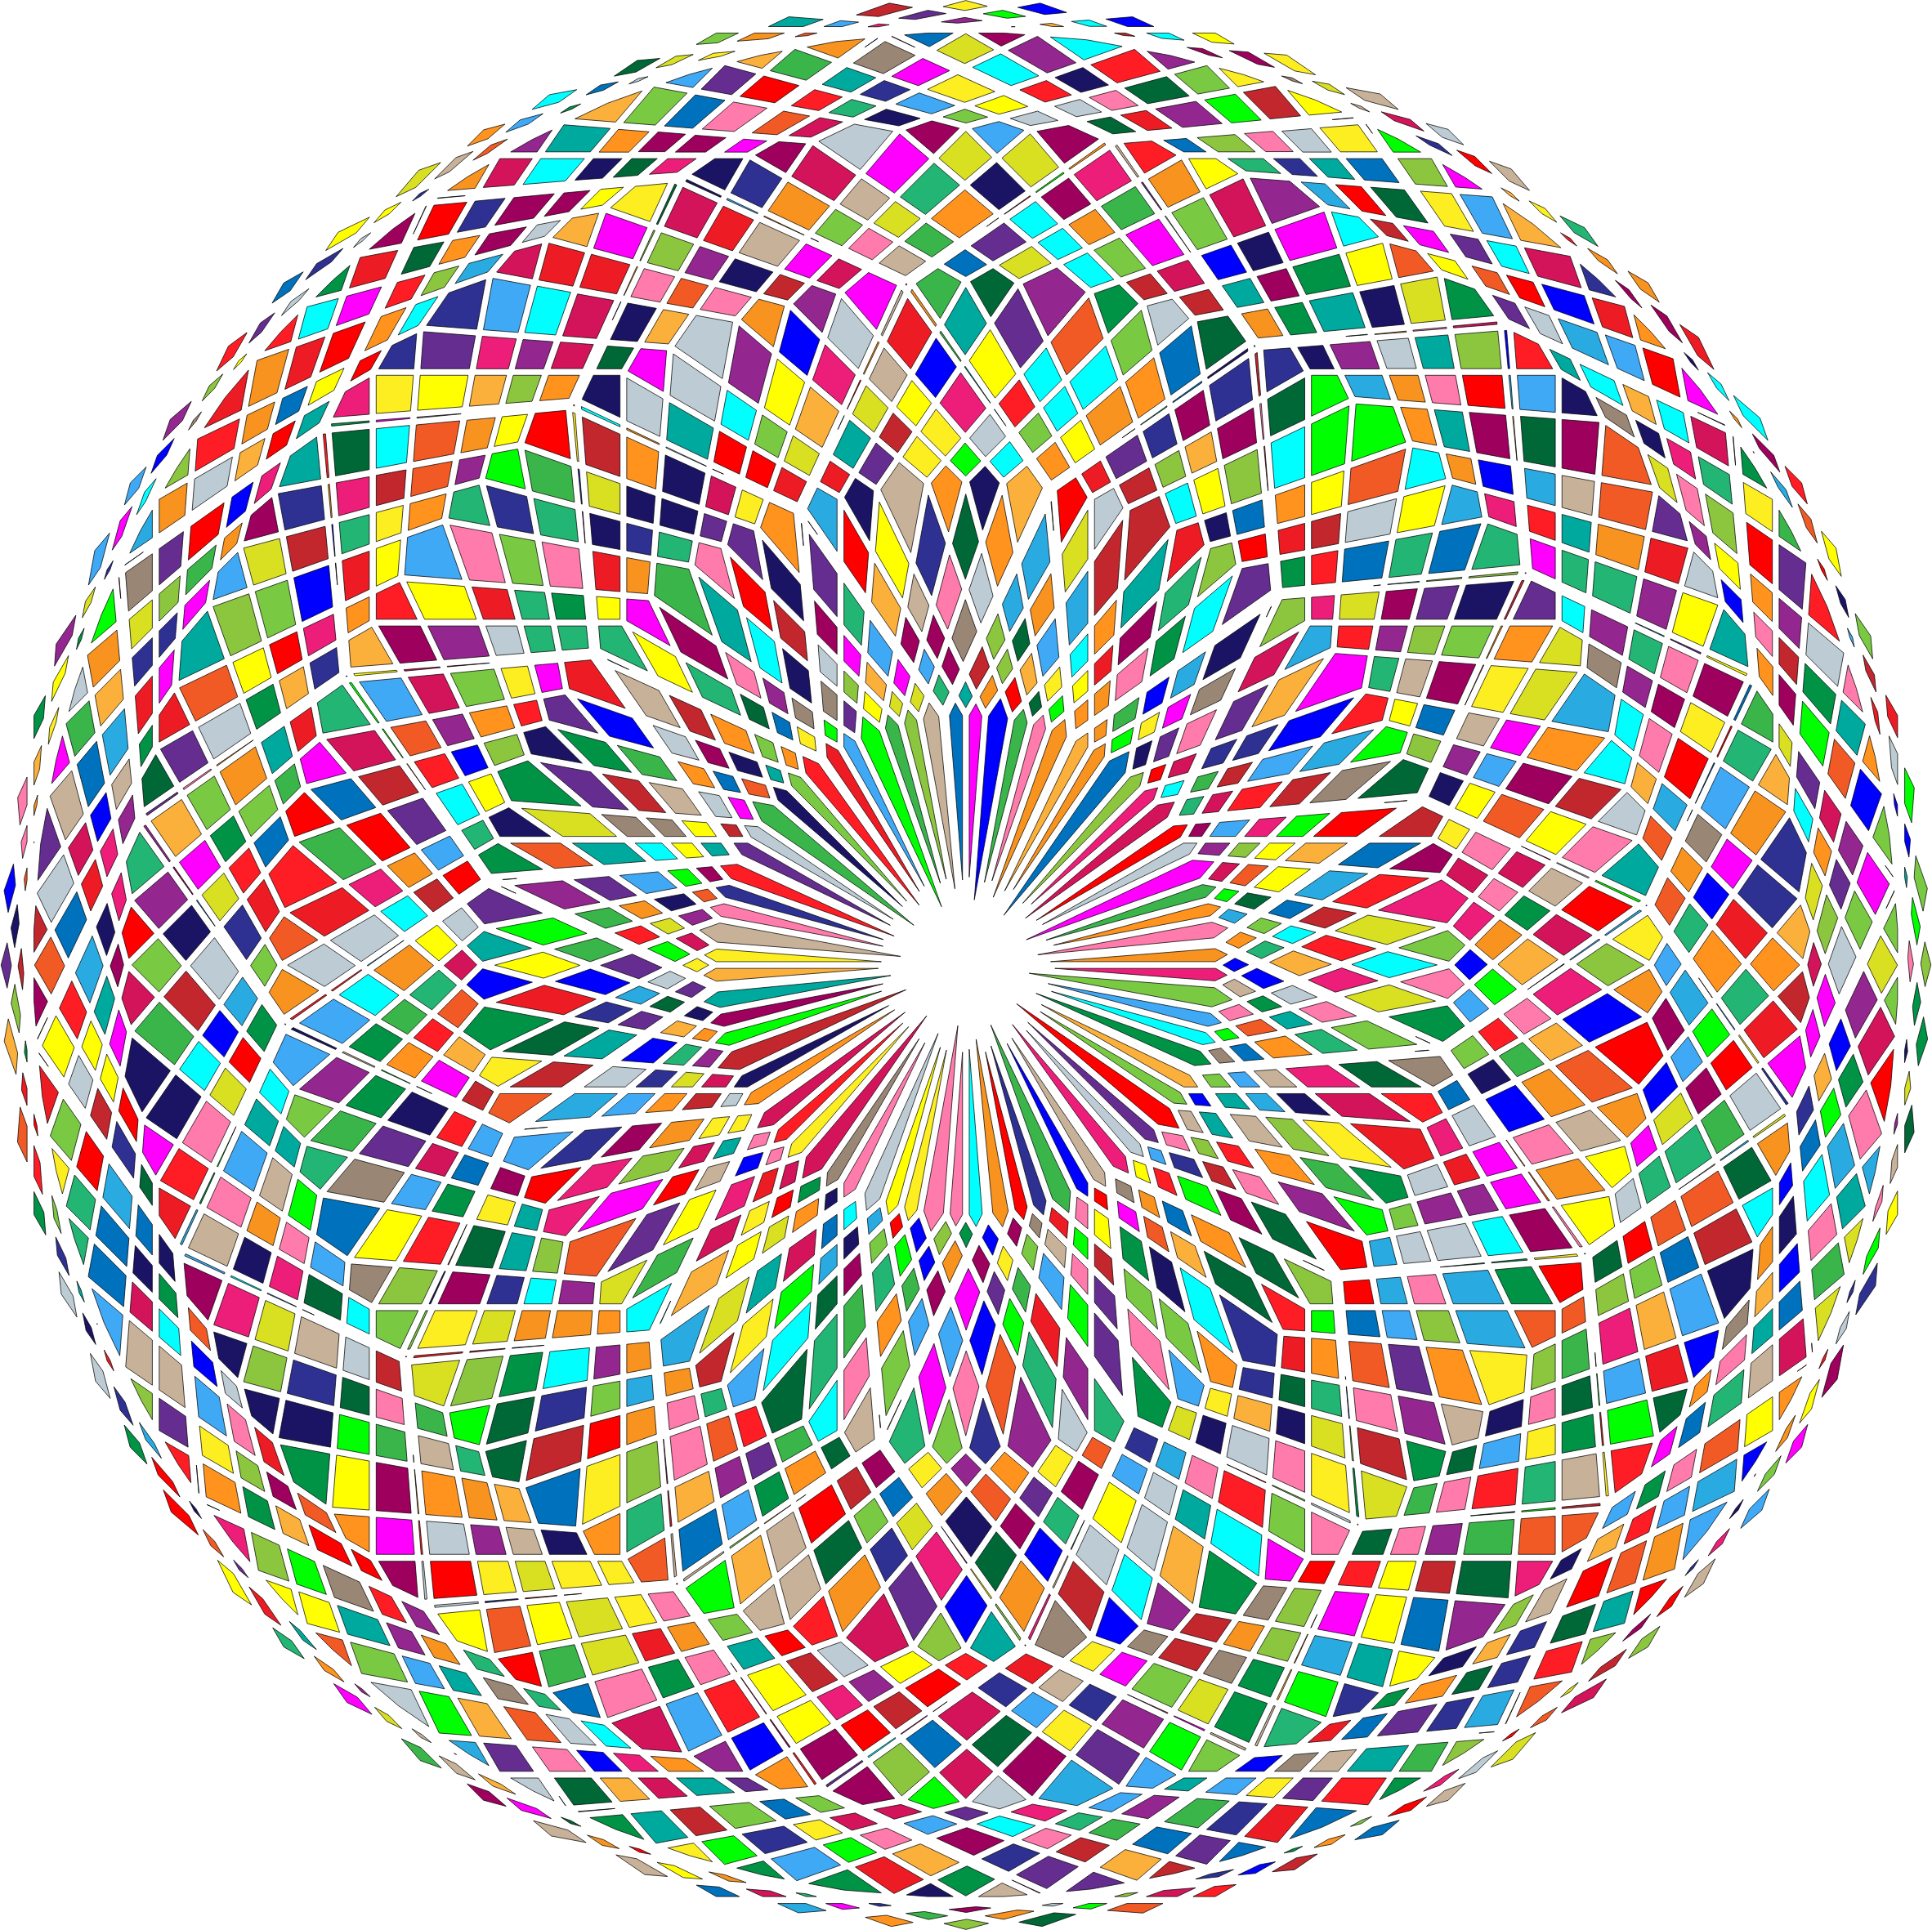 Abstract Circle Colorful Remix by GDJ